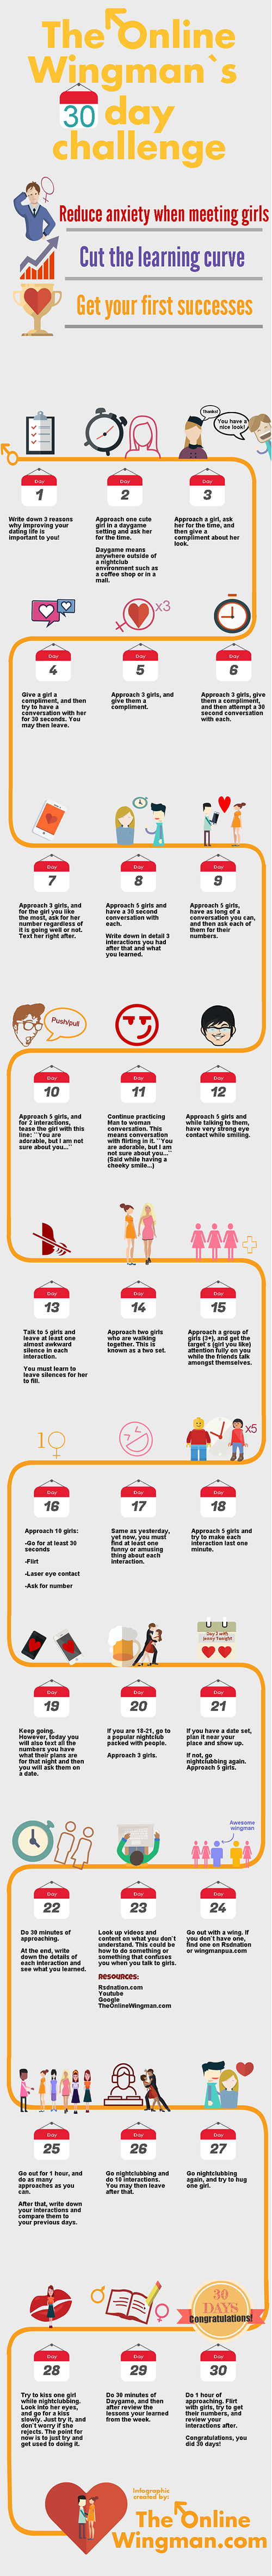 The-Online-Wingman-30-day-challenge-infographic-tool-11